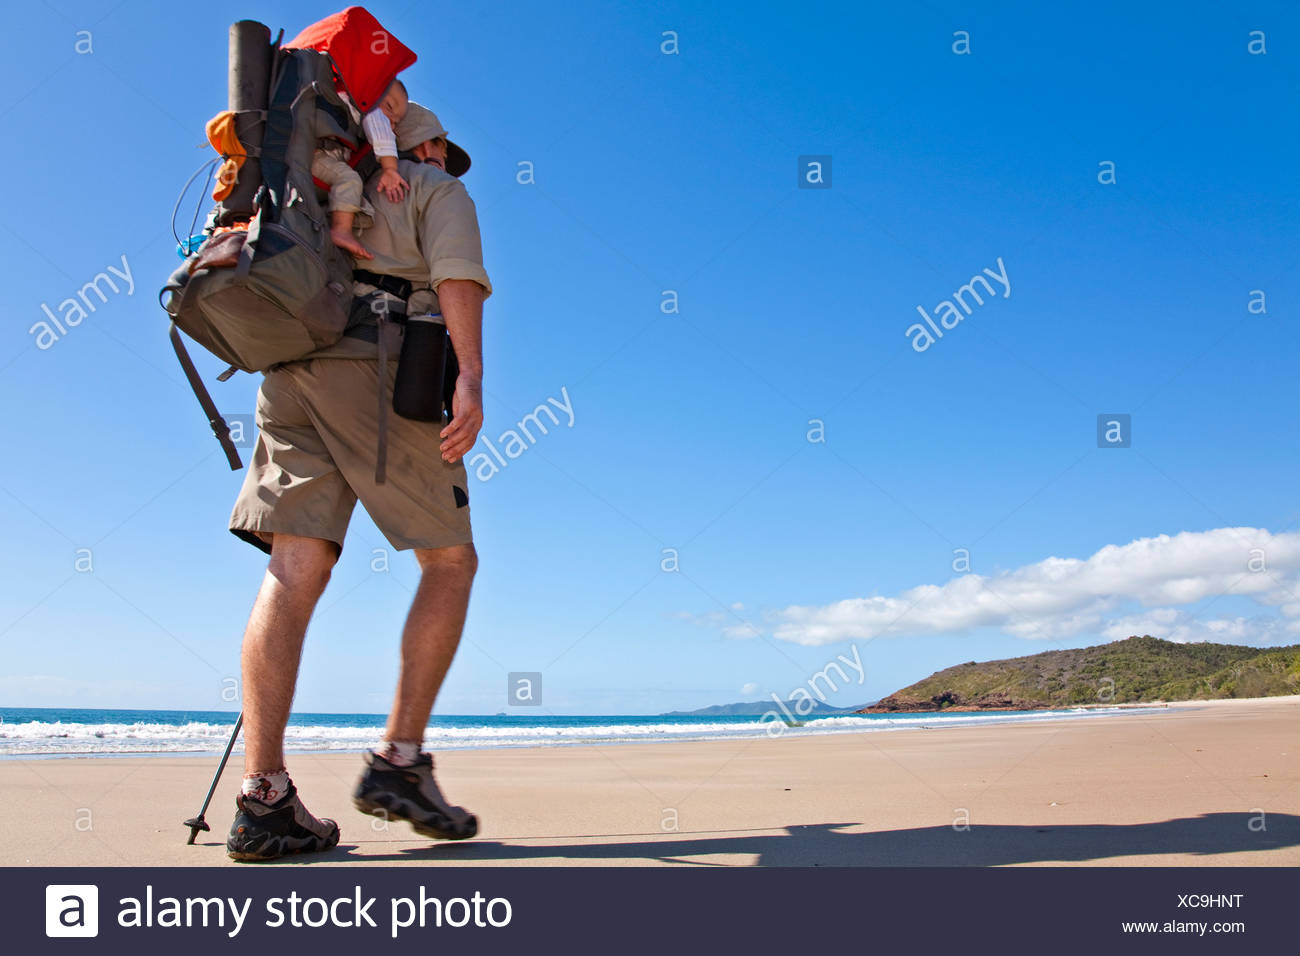 A man hikes while carrying his baby in Zoe Bay, Hinchinbrook Island, Queensland, Australia. Stock Photo